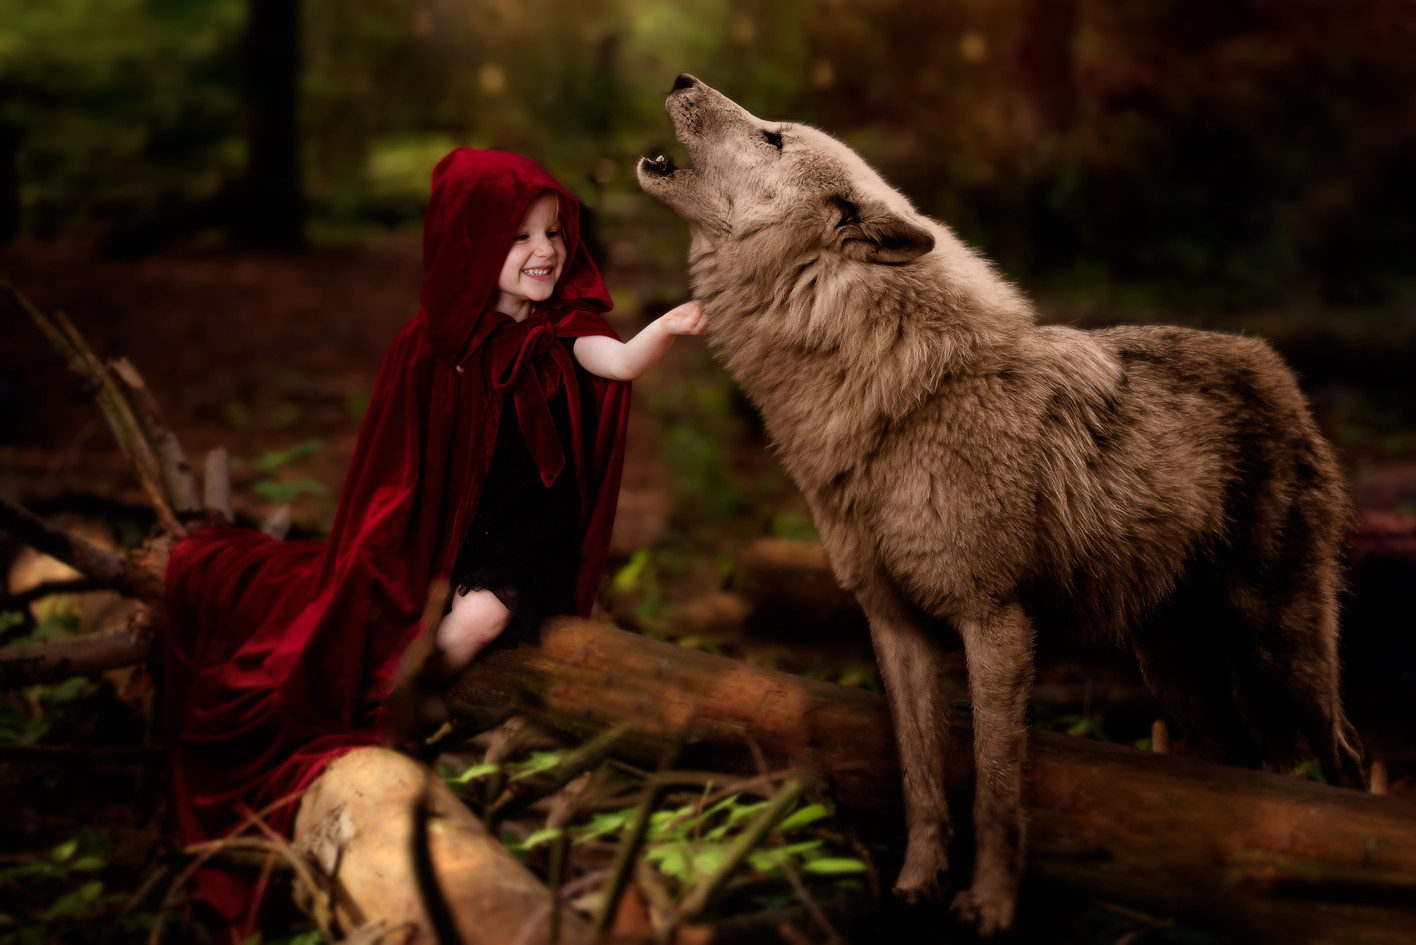 Little Red Riding Hood petting the big bad wolf